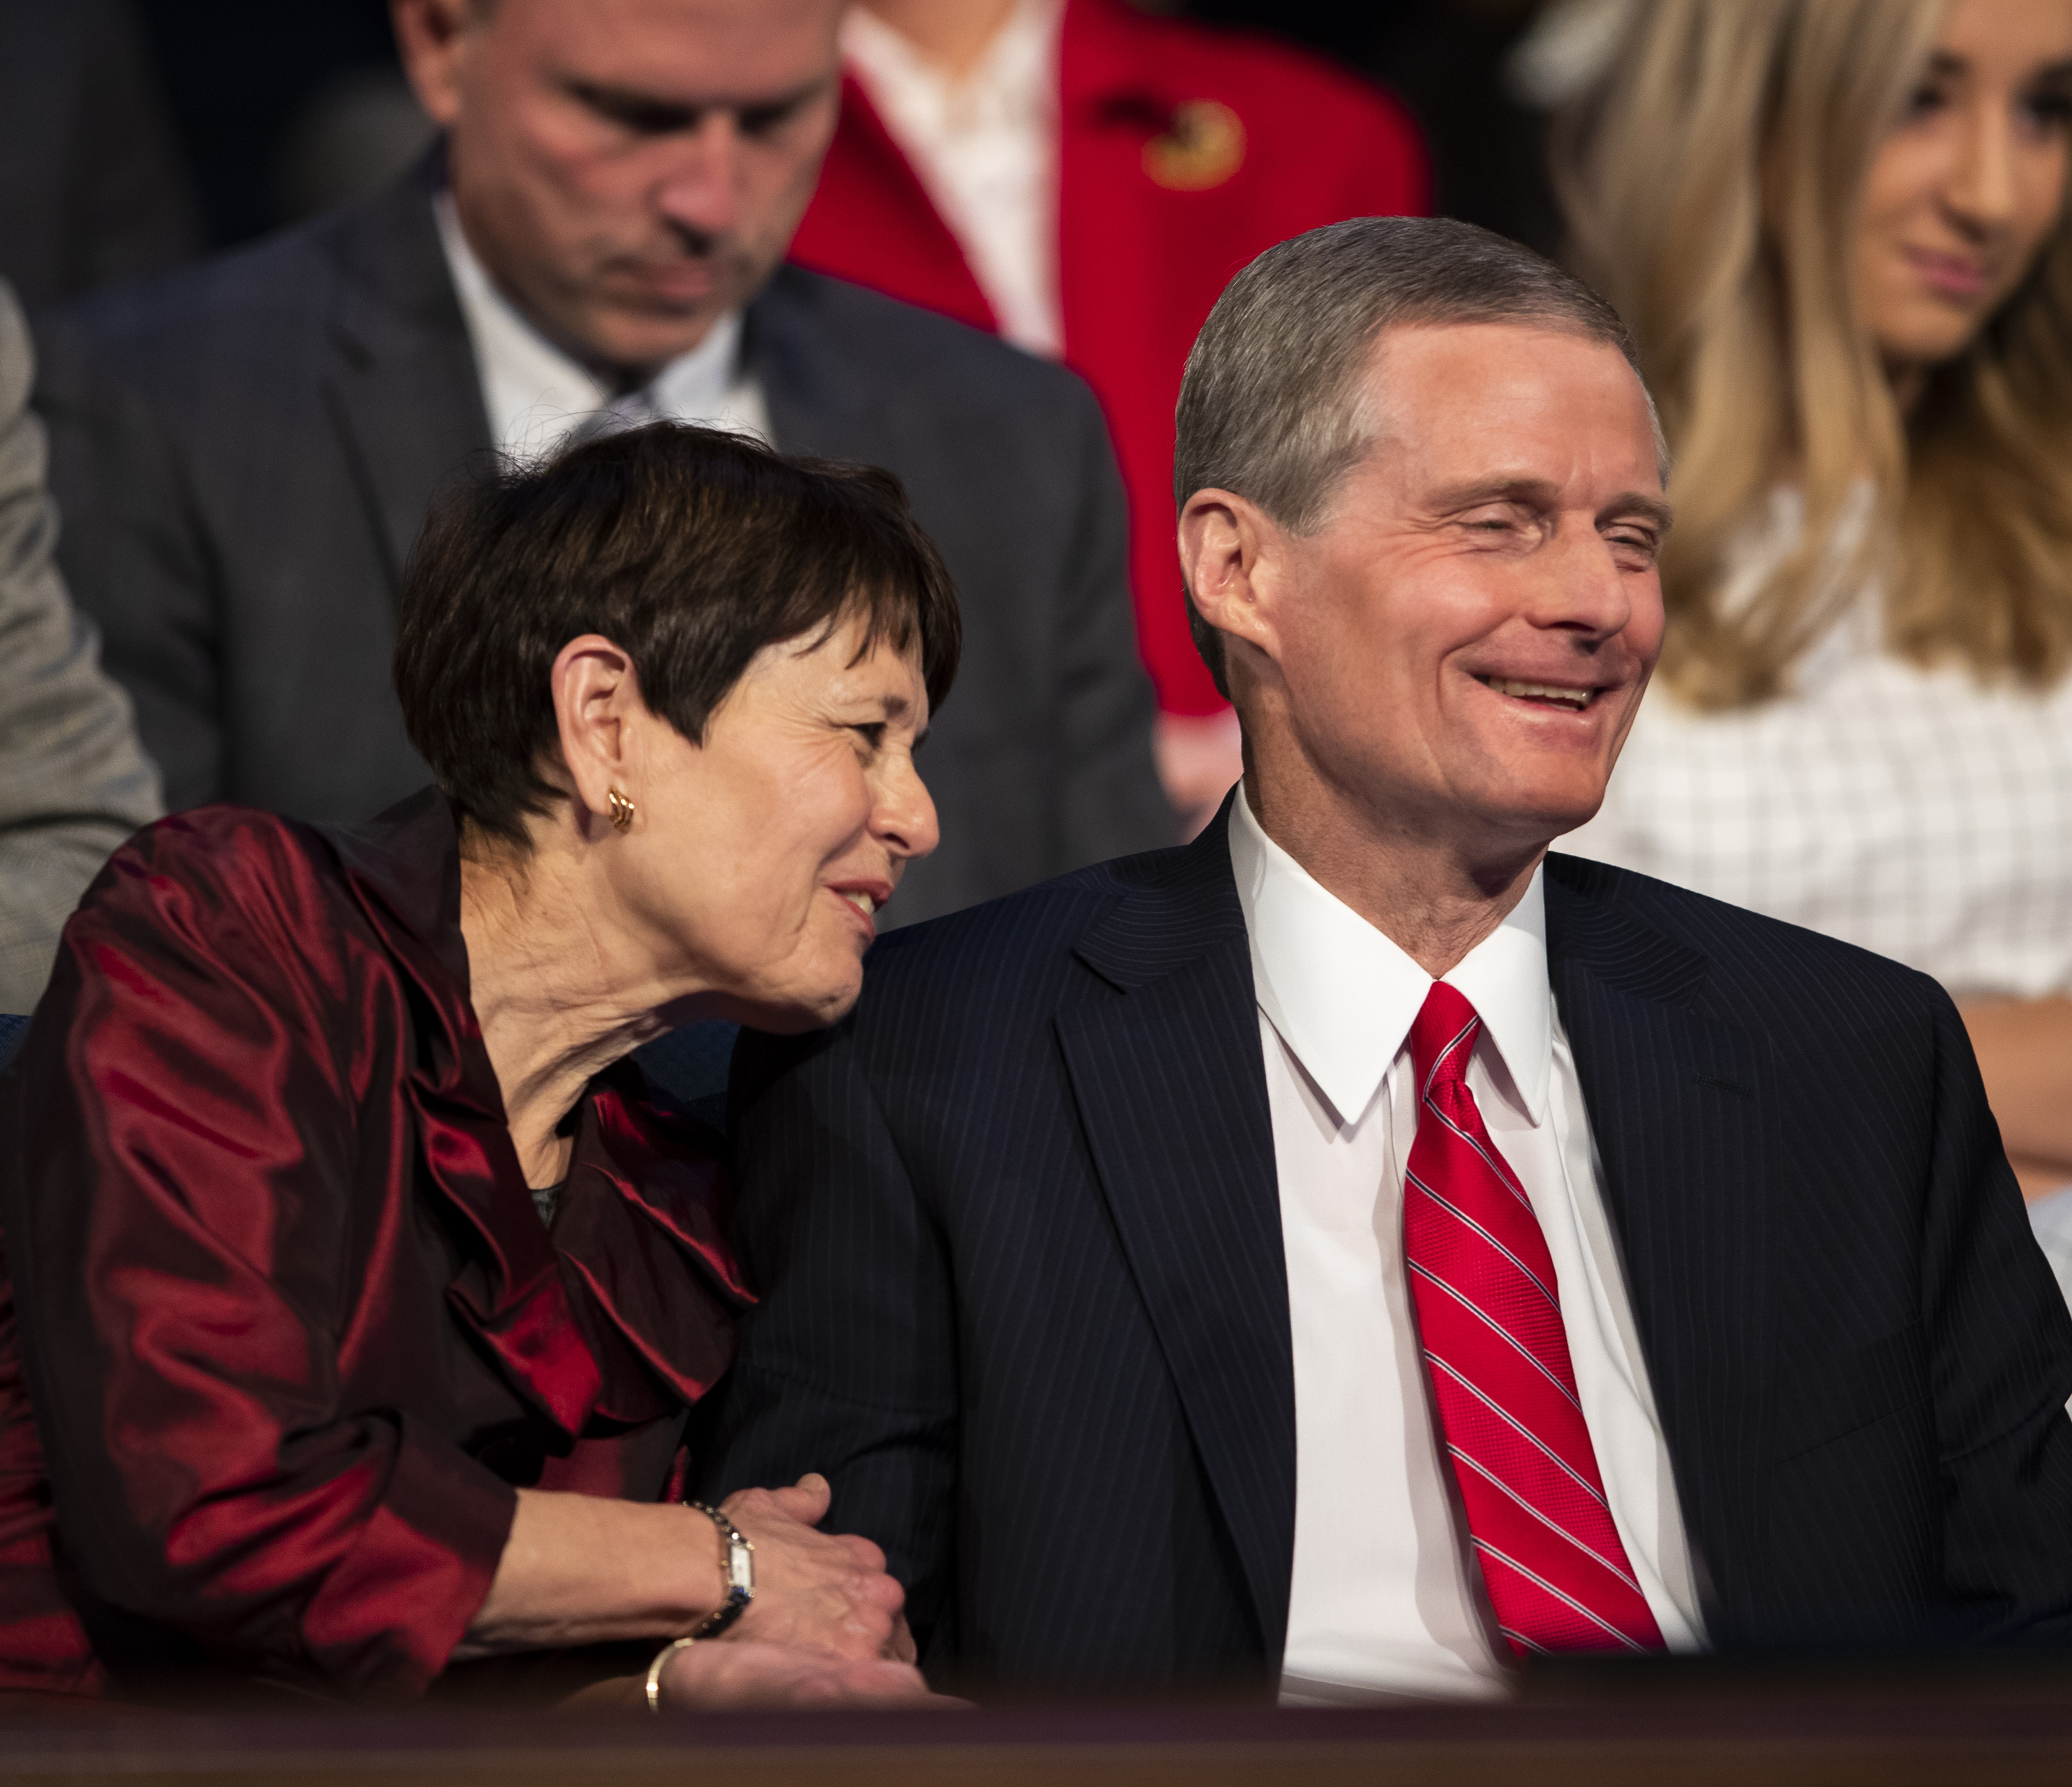 Elder David A. Bednar of the Quorum of the Twelve Apostles of The Church of Jesus Christ of Latter-day Saints and his wife, Sister Susan Bednar, share a laugh as they attend the campus devotional in the Marriott Center at BYU in Provo on Tuesday, Dec. 4, 2018.